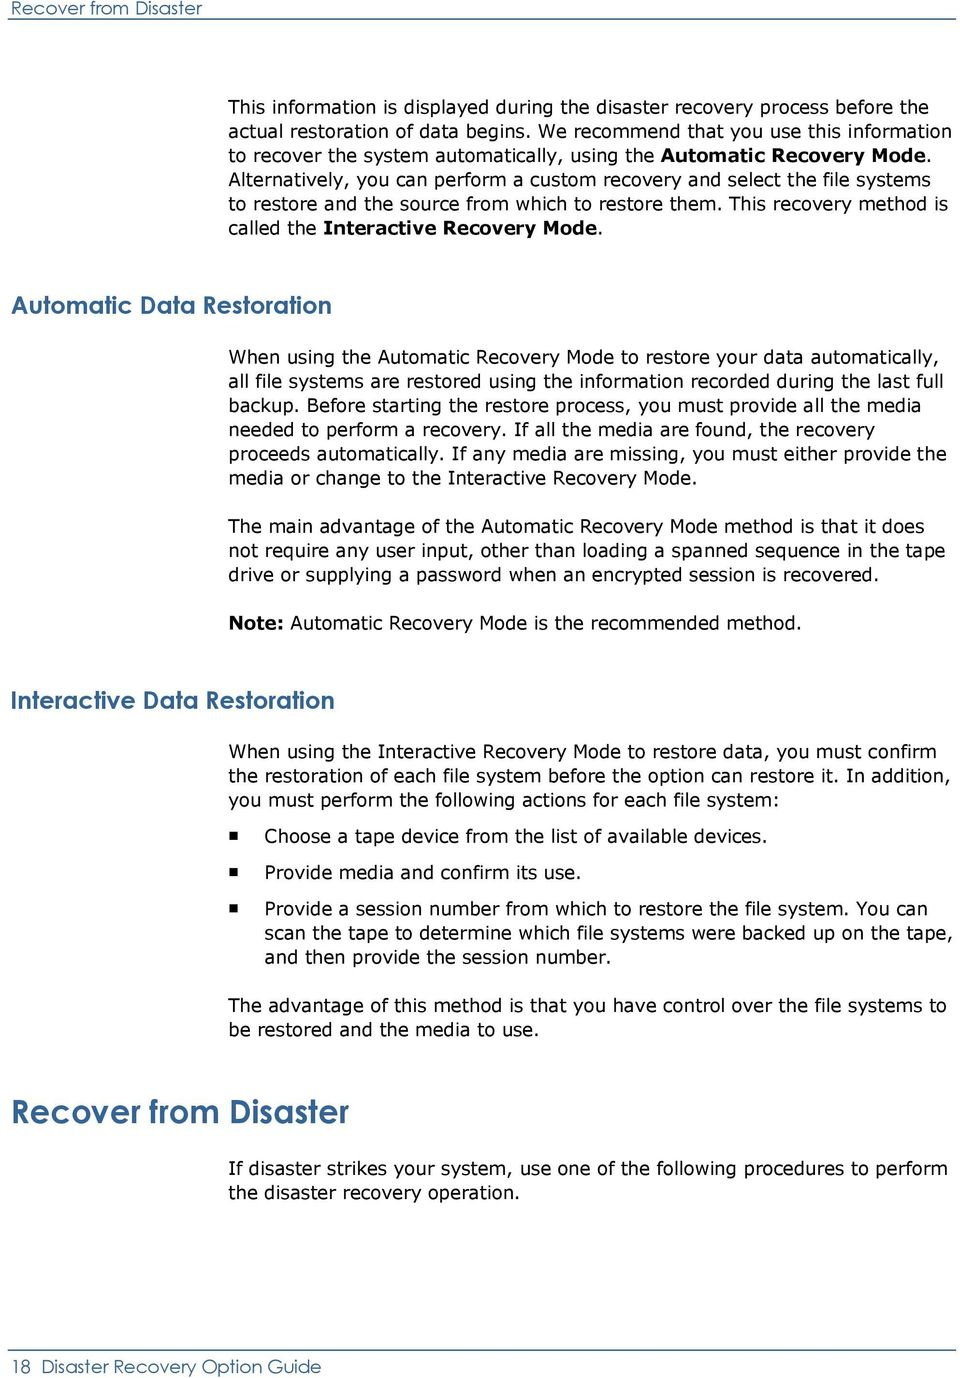 Alternatively, you can perform a custom recovery and select the file systems to restore and the source from which to restore them. This recovery method is called the Interactive Recovery Mode.